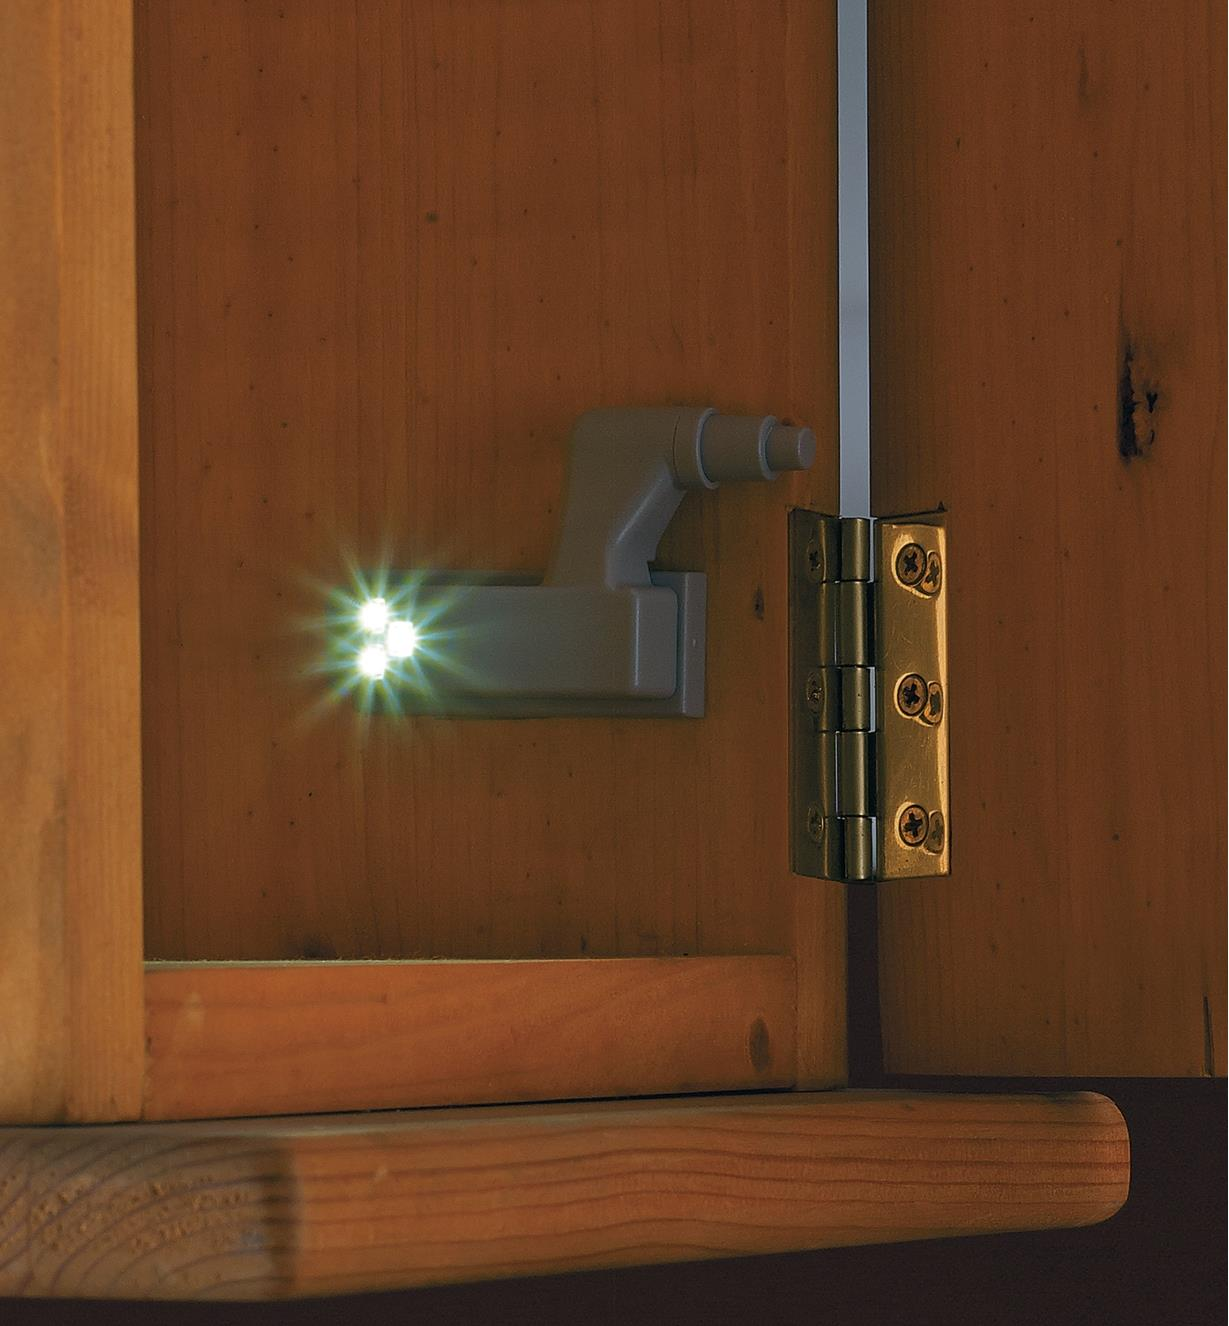 Wireless Hinge LED mounted inside a cabinet